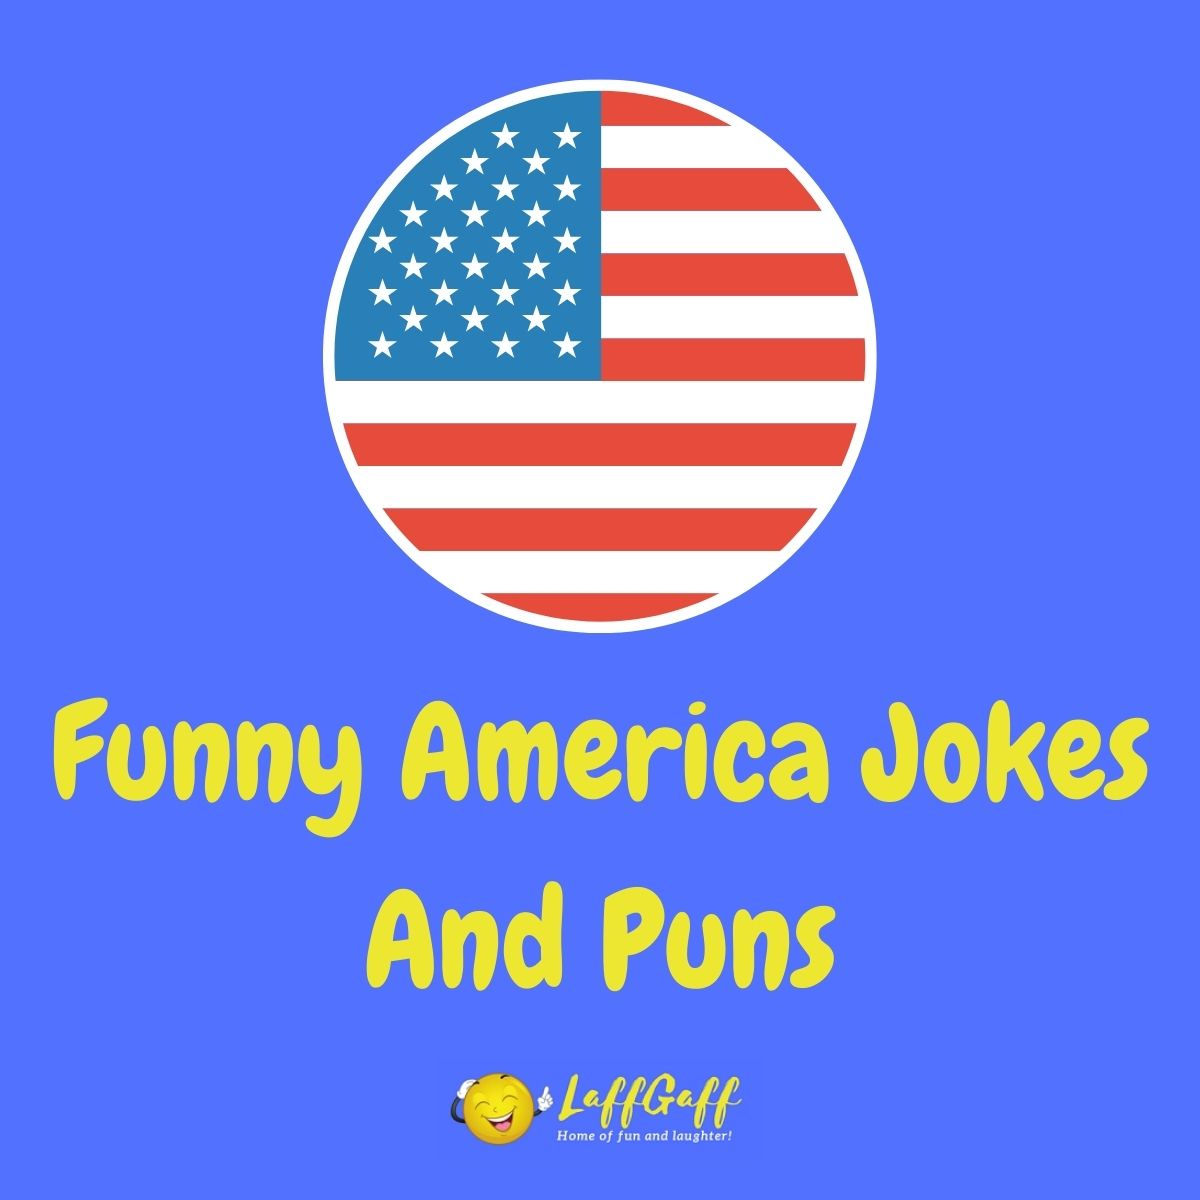 Featured image for a page of funny America jokes and puns.